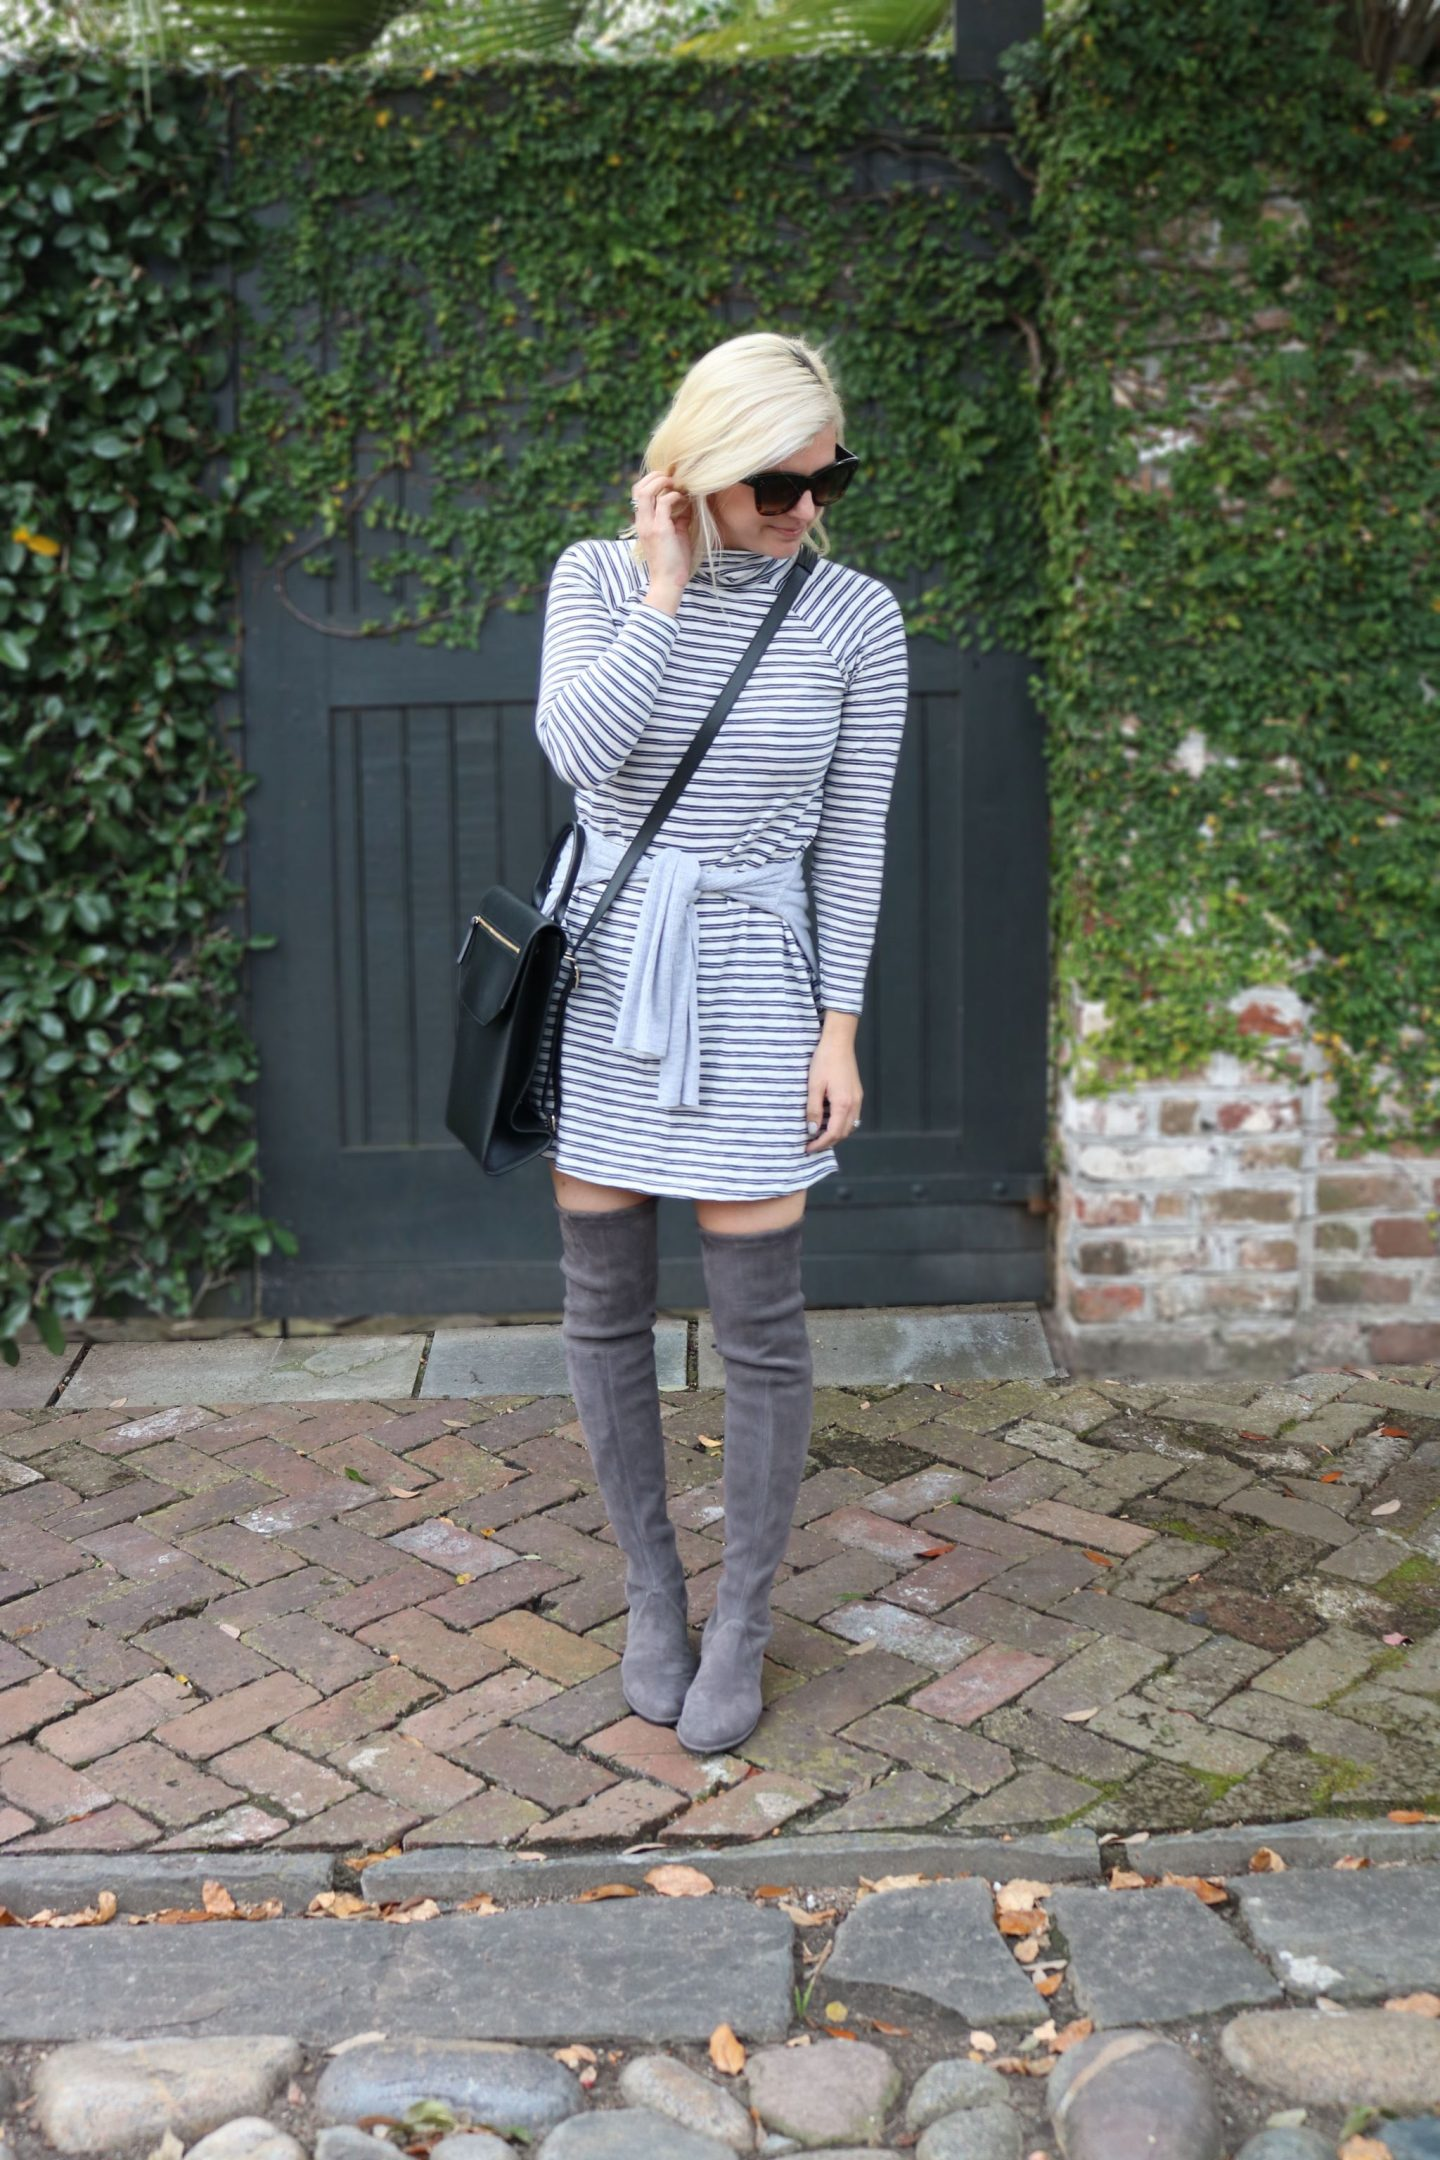 abercrombie striped dress, turtleneck, celine sunglasses, chandra keyser handbag, lowland stuart weitzman boots